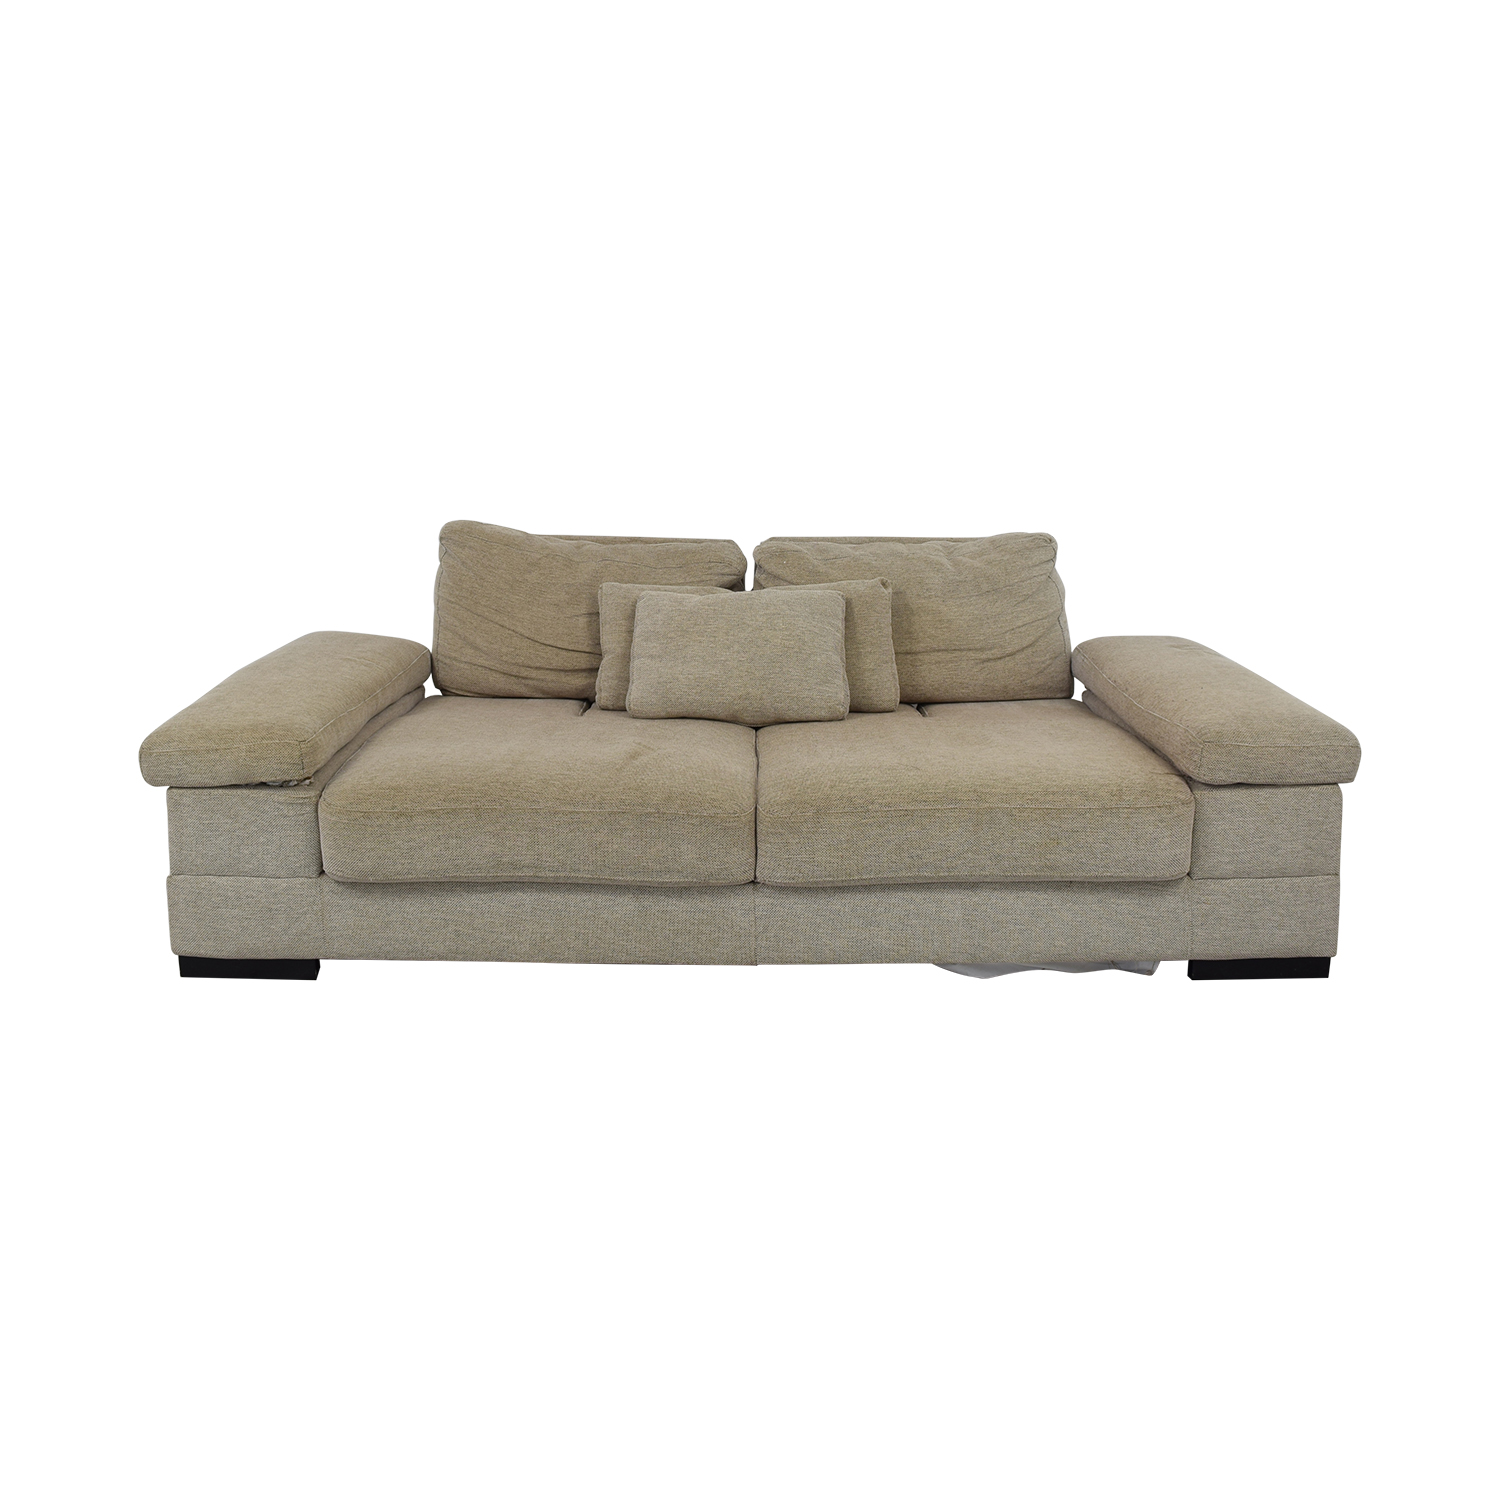 Lazzoni Lazzoni Kema Sectional Sofa Bed discount